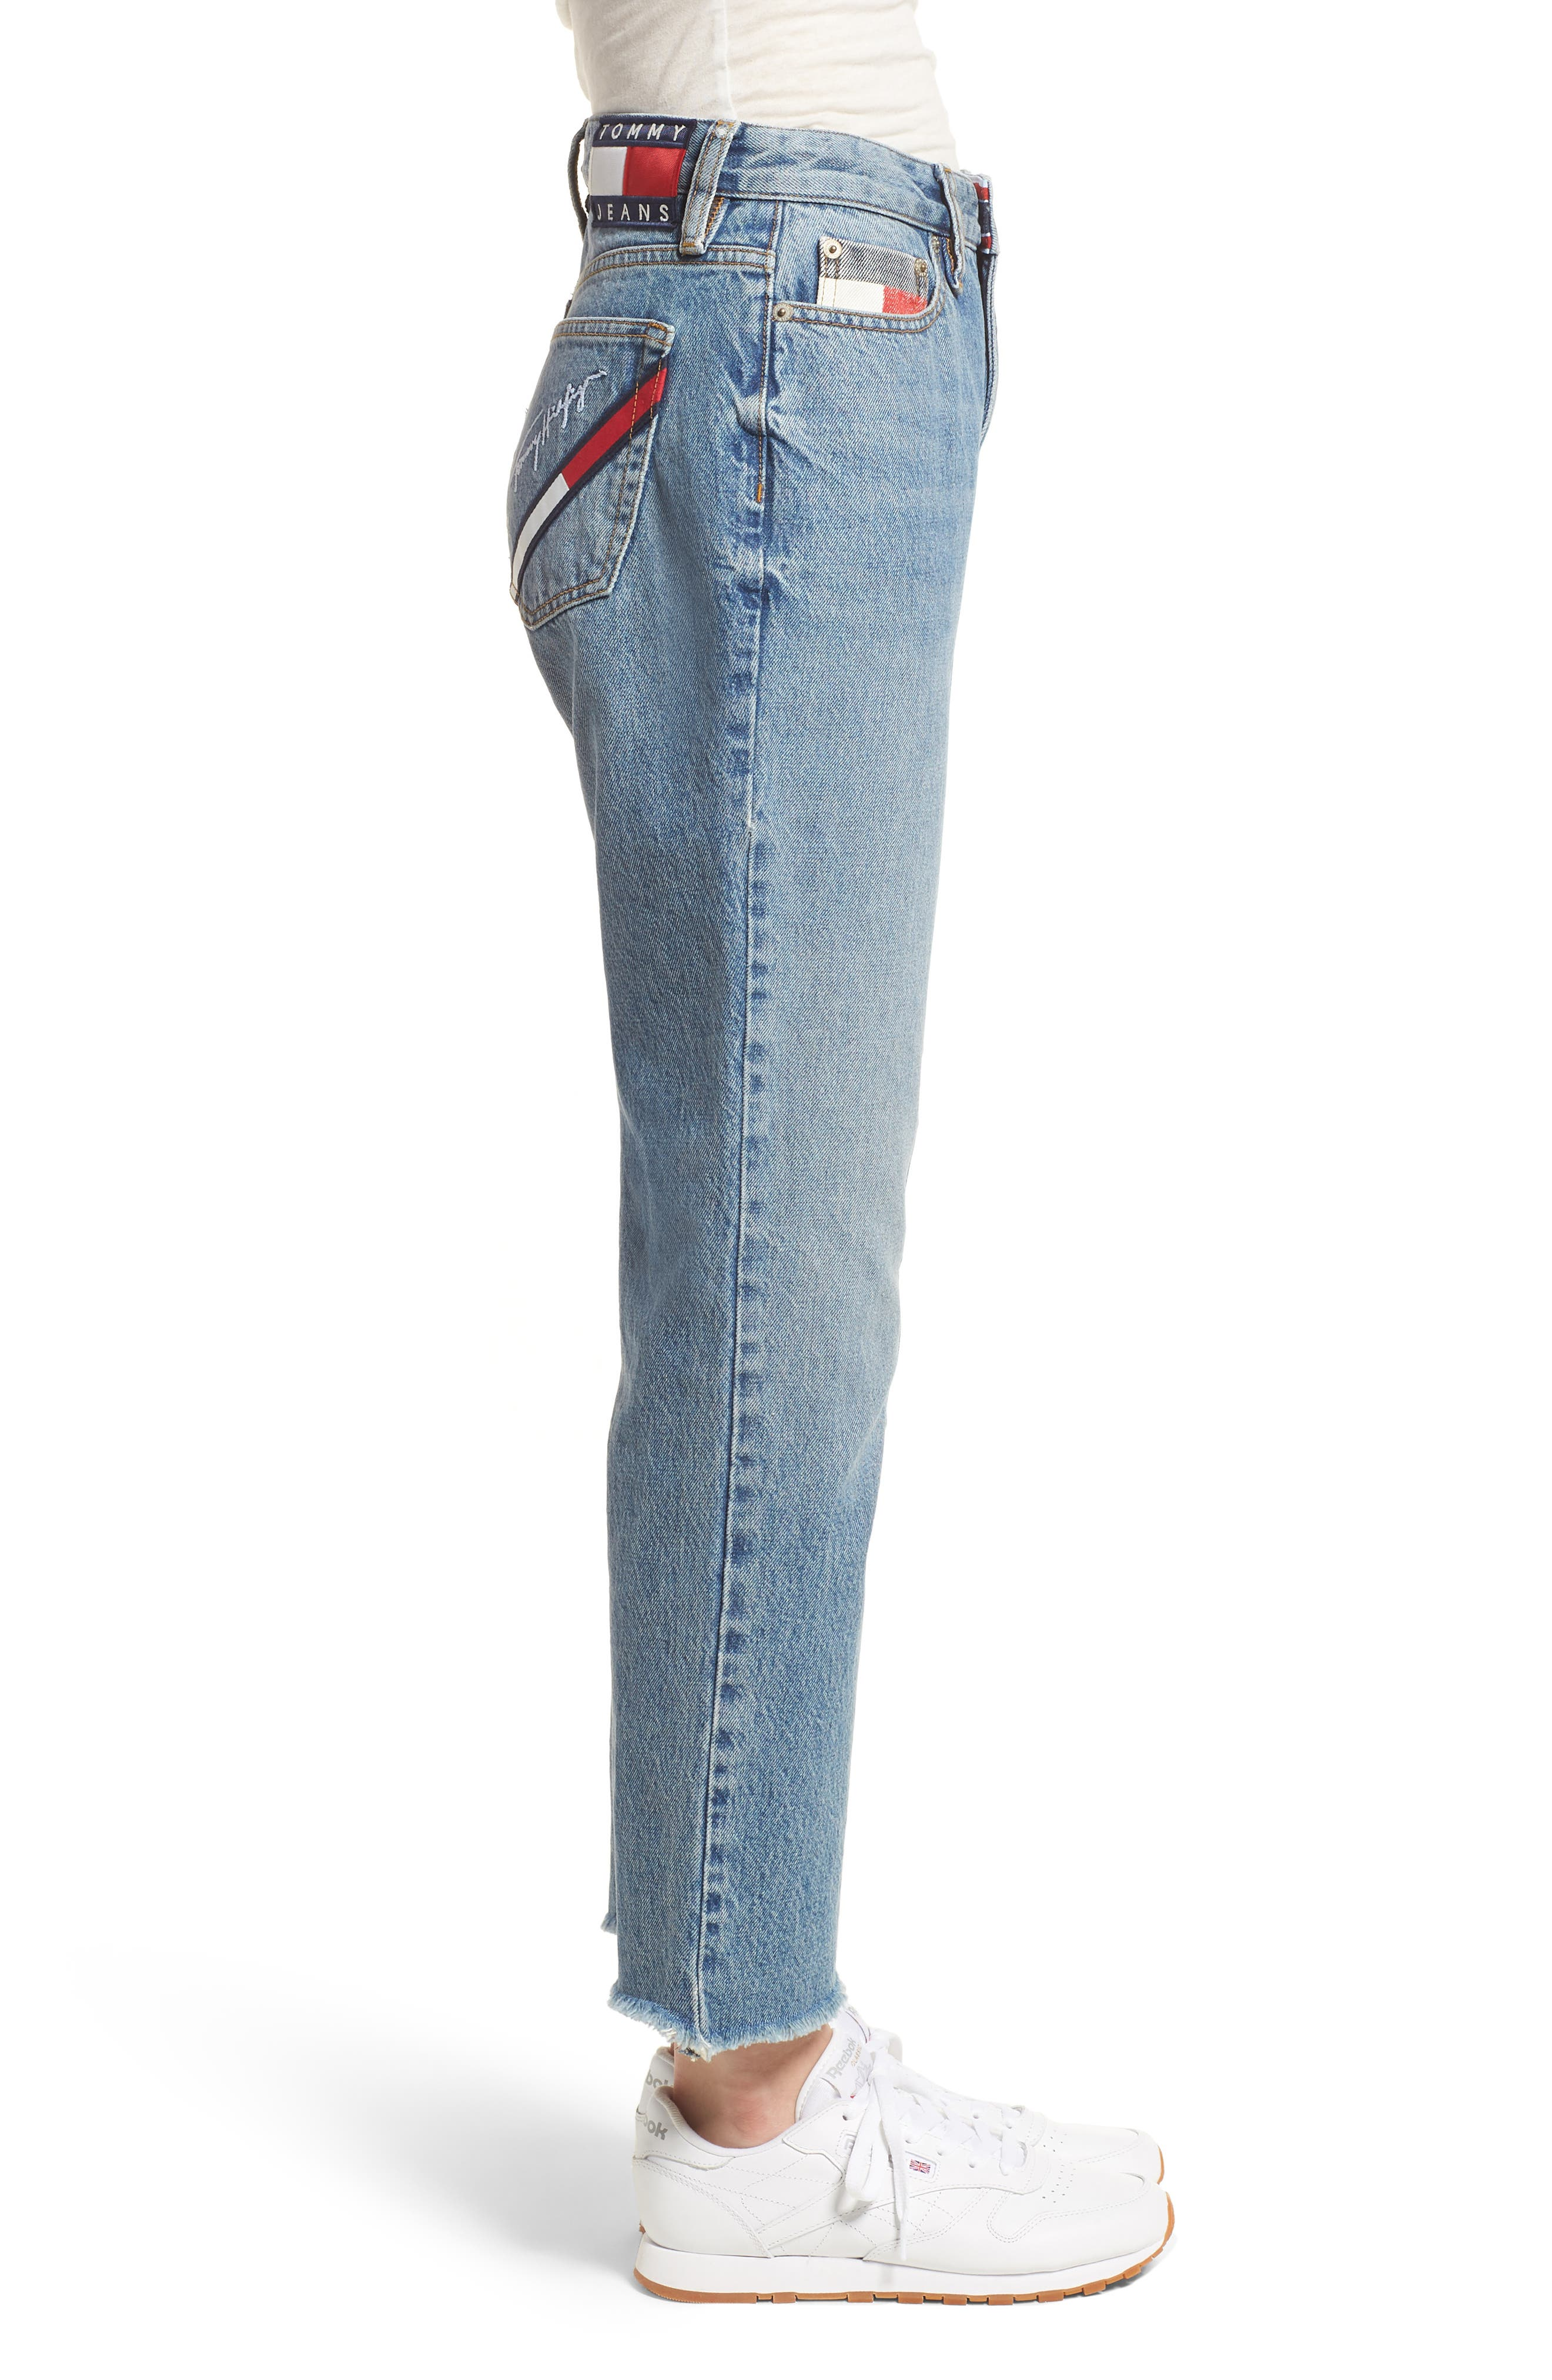 TOMMY JEANS,                             TJW 90s Mom Jeans,                             Alternate thumbnail 3, color,                             401